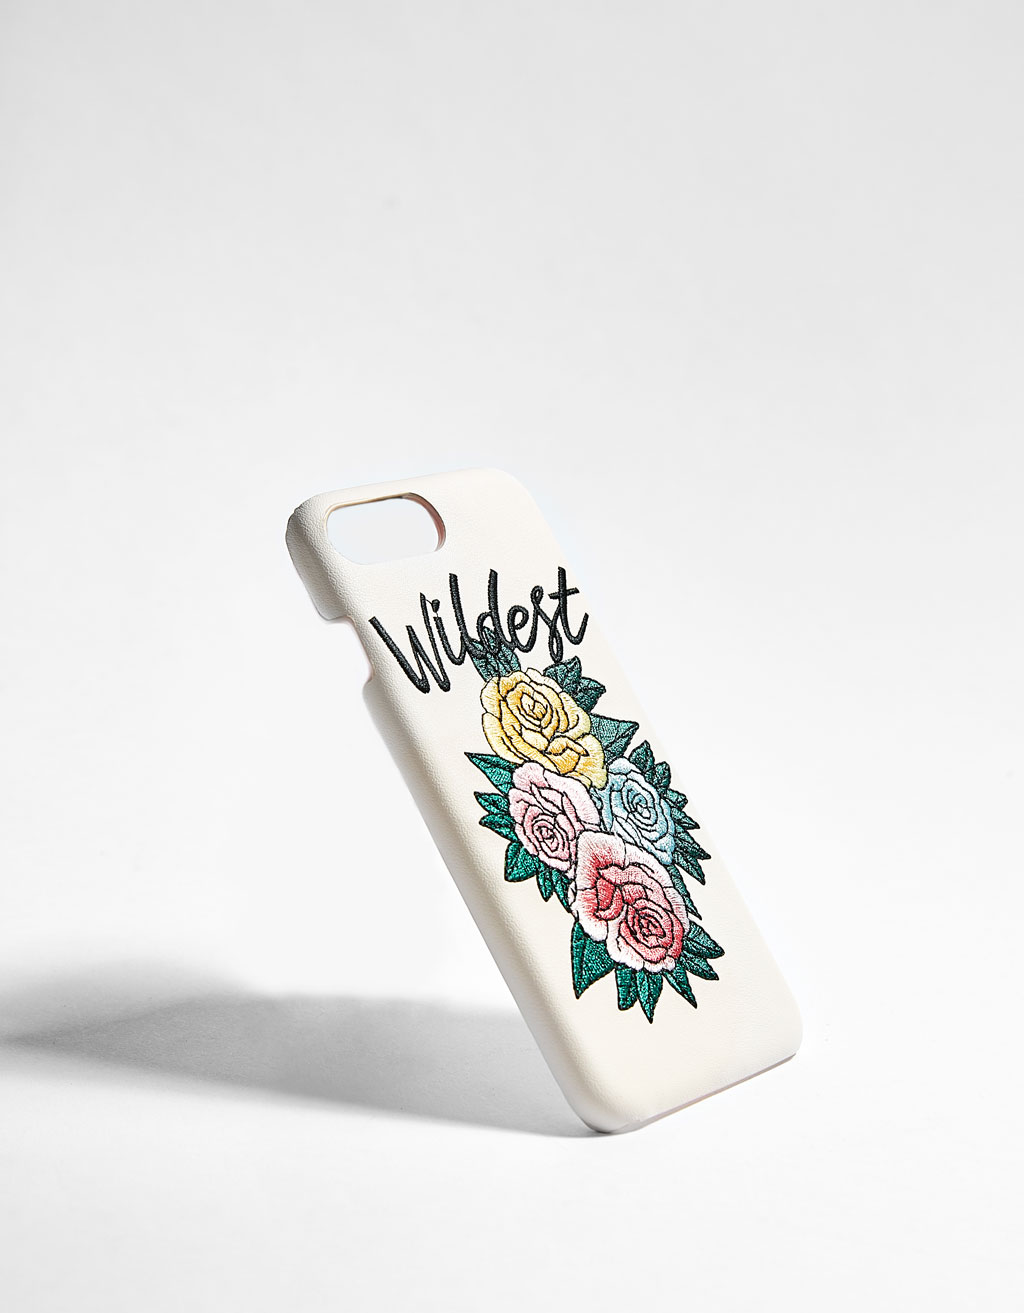 iPhone 6/6s/7/8 case with floral embroidery